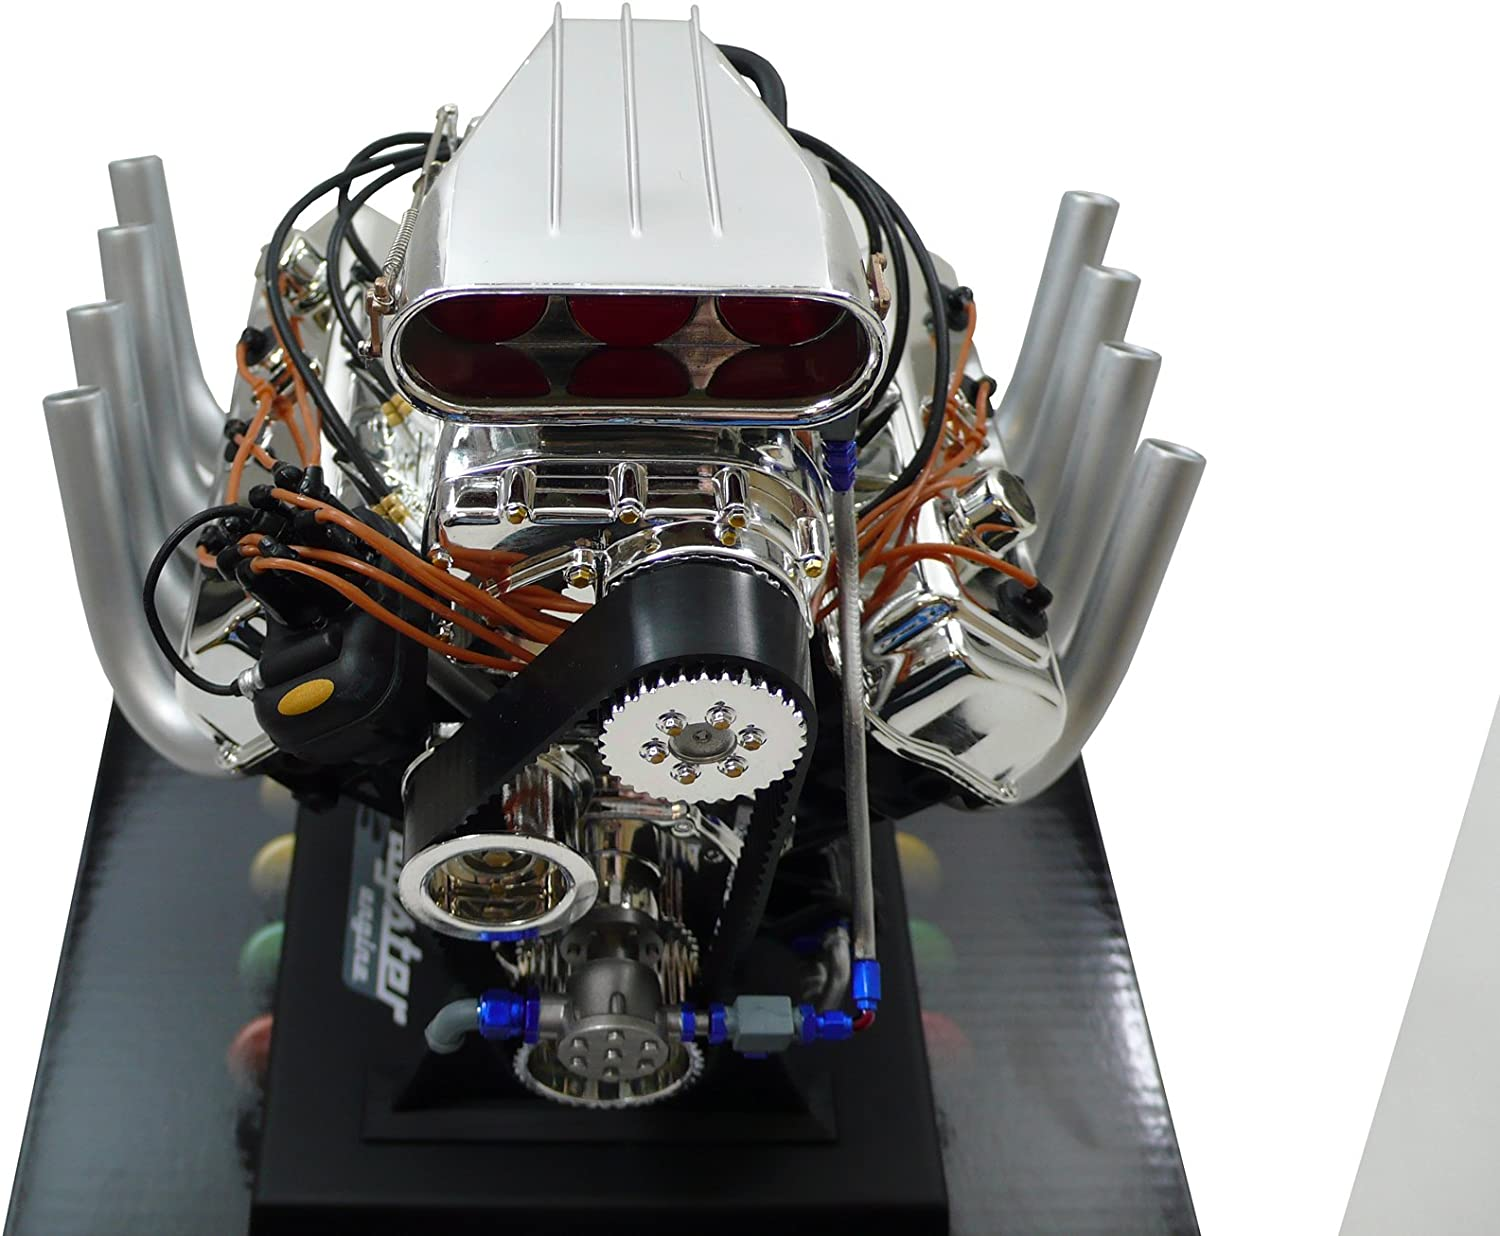 Dodge HEMI Top Fuel Dragster Model Engine -Diecast 1:6 Scale Motor Replica Scoop